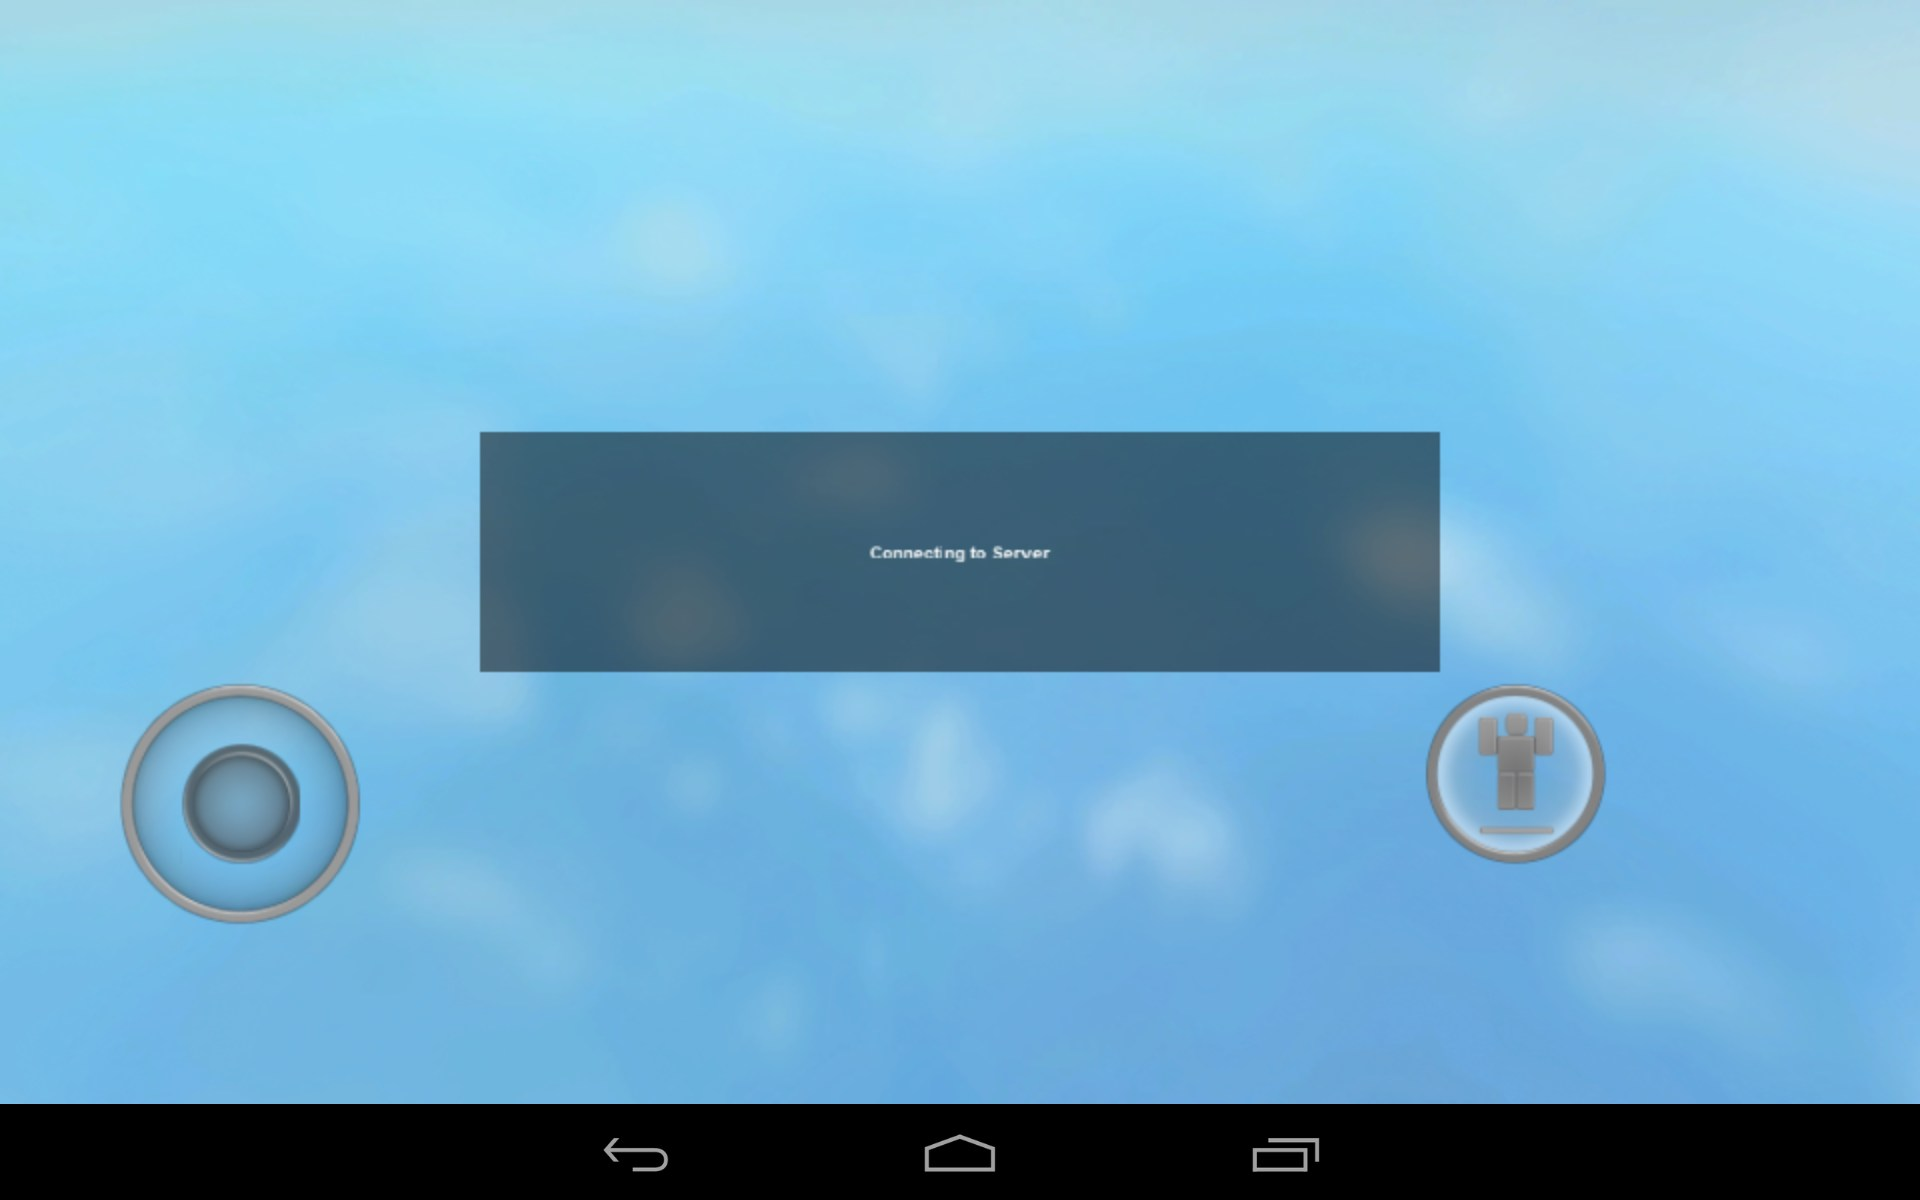 android 4.0 tablet 3d games free download